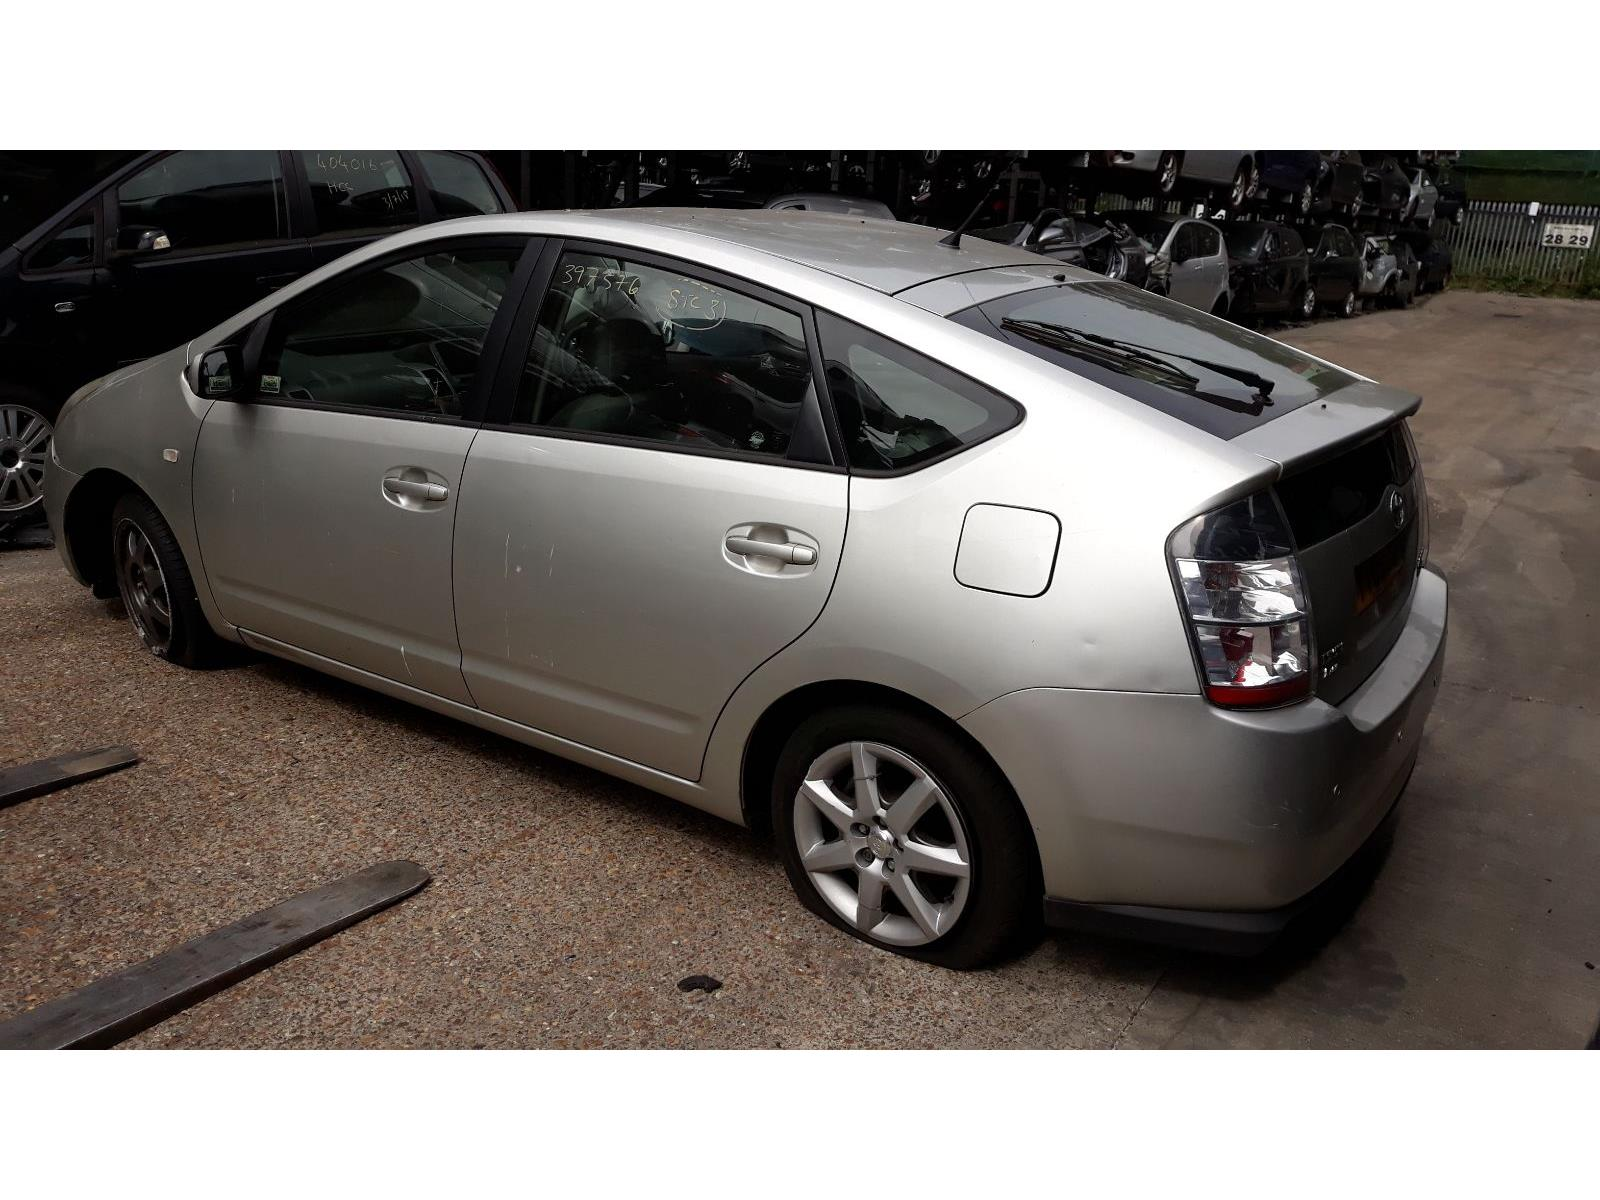 Toyota Prius 2004 To 2009 T Spirit 5 Door Hatchback Scrap Carina E Fuse Box Salvage Car For Sale Auction Silverlake Autoparts